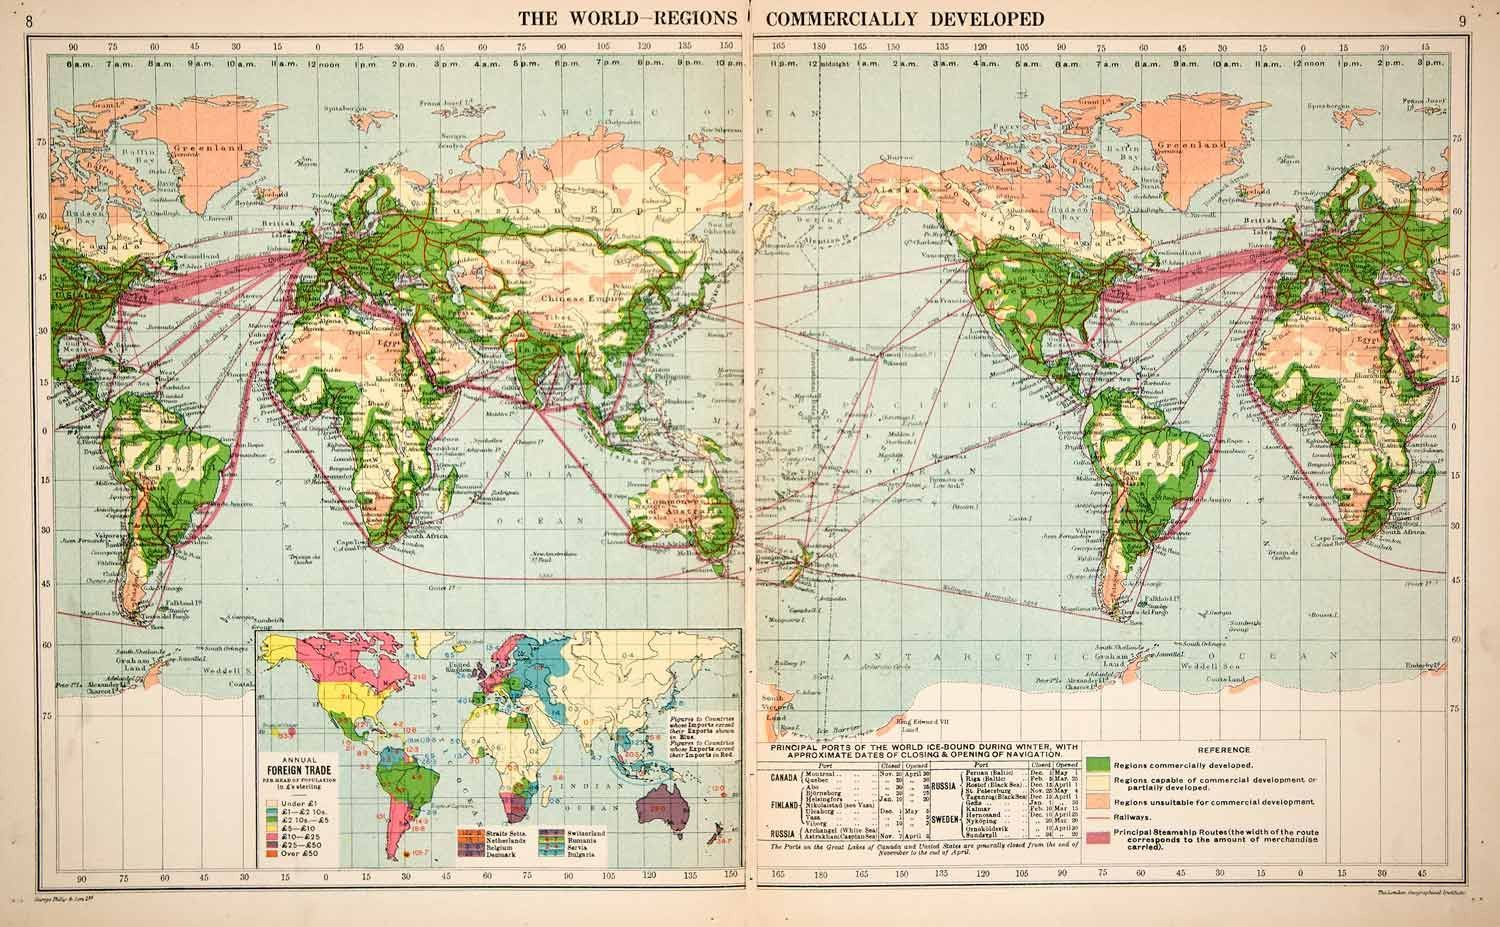 1913 Print Color World Map Trade Route Commercial Steamship Railway XGPC3